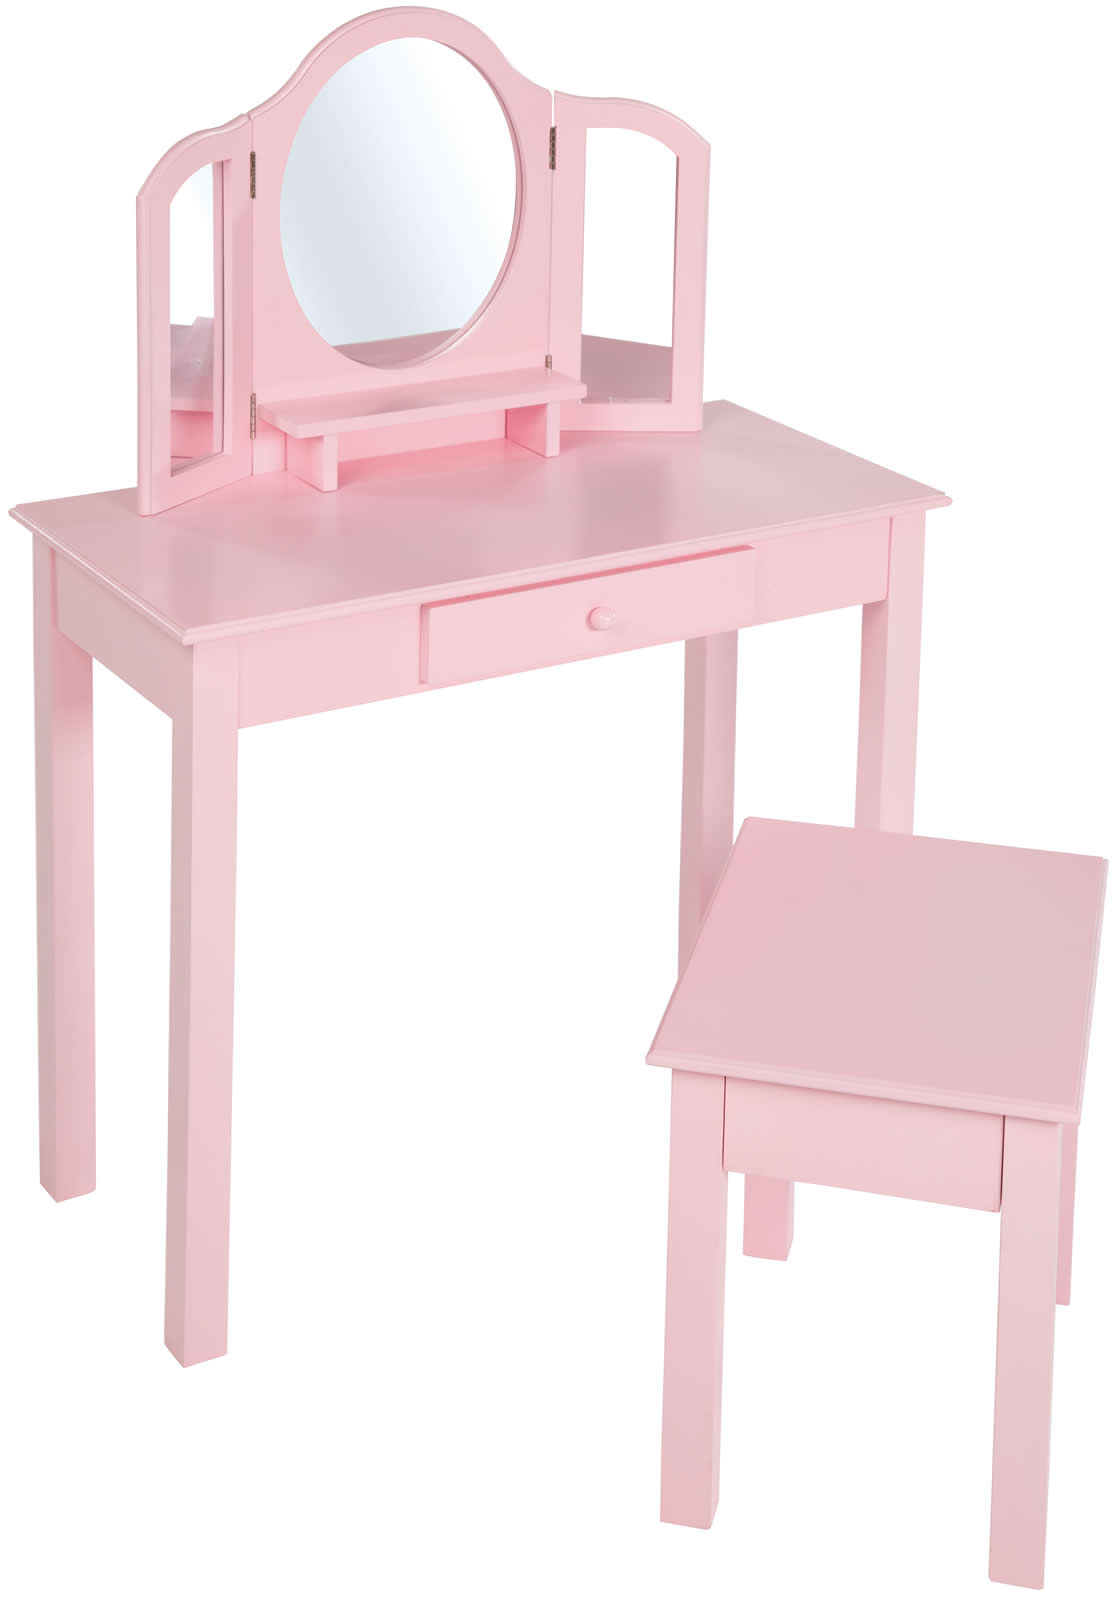 roba kinder schminktisch frisiertisch frisierkommode m spiegel hocker holz rosa ebay. Black Bedroom Furniture Sets. Home Design Ideas